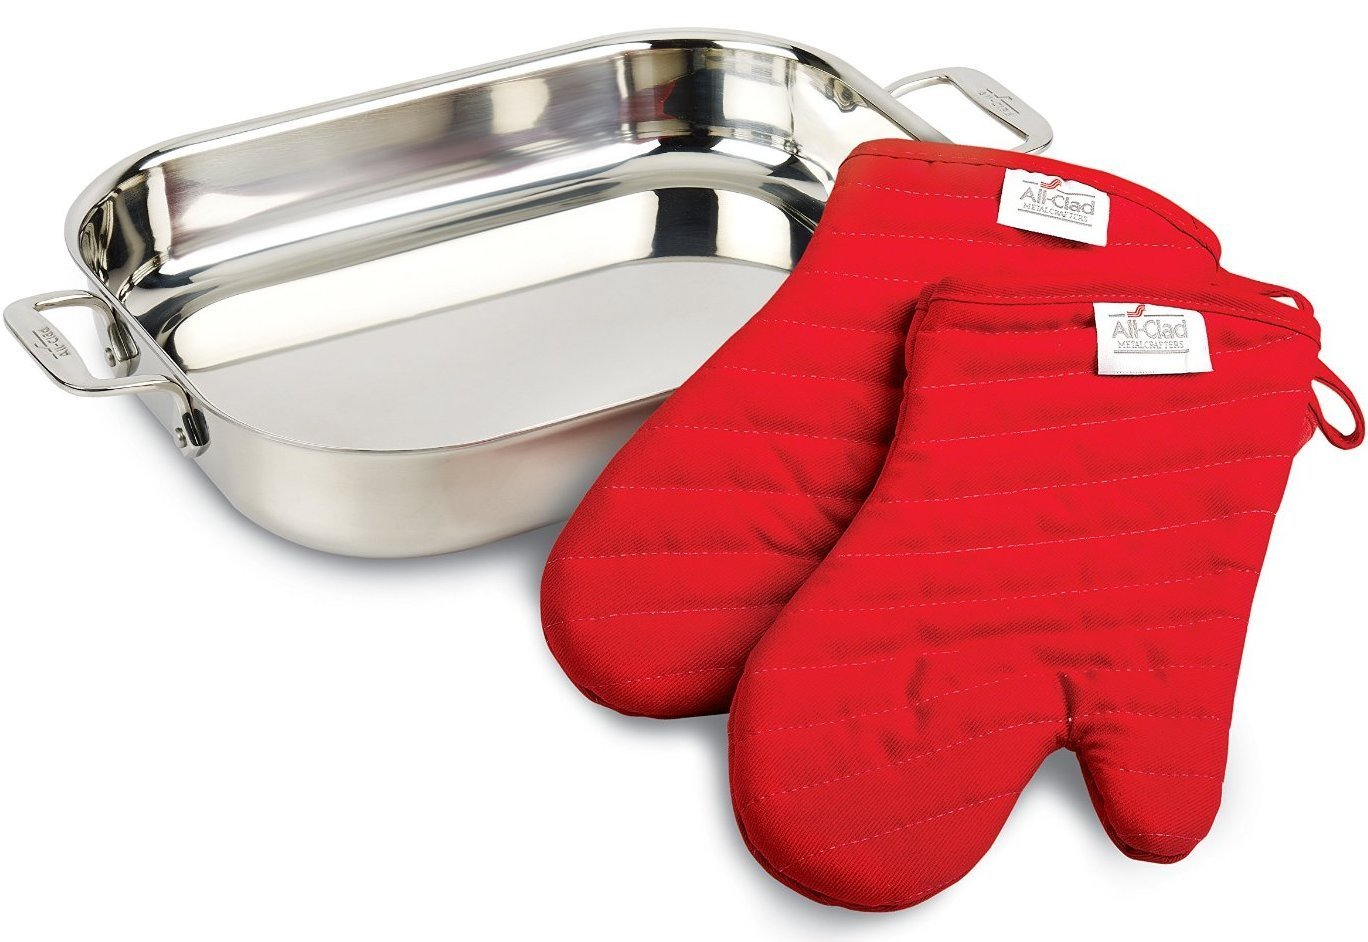 All-Clad 00830 Stainless-Steel Lasagna Pan with 2 Oven Mitts/Cookware, Silver